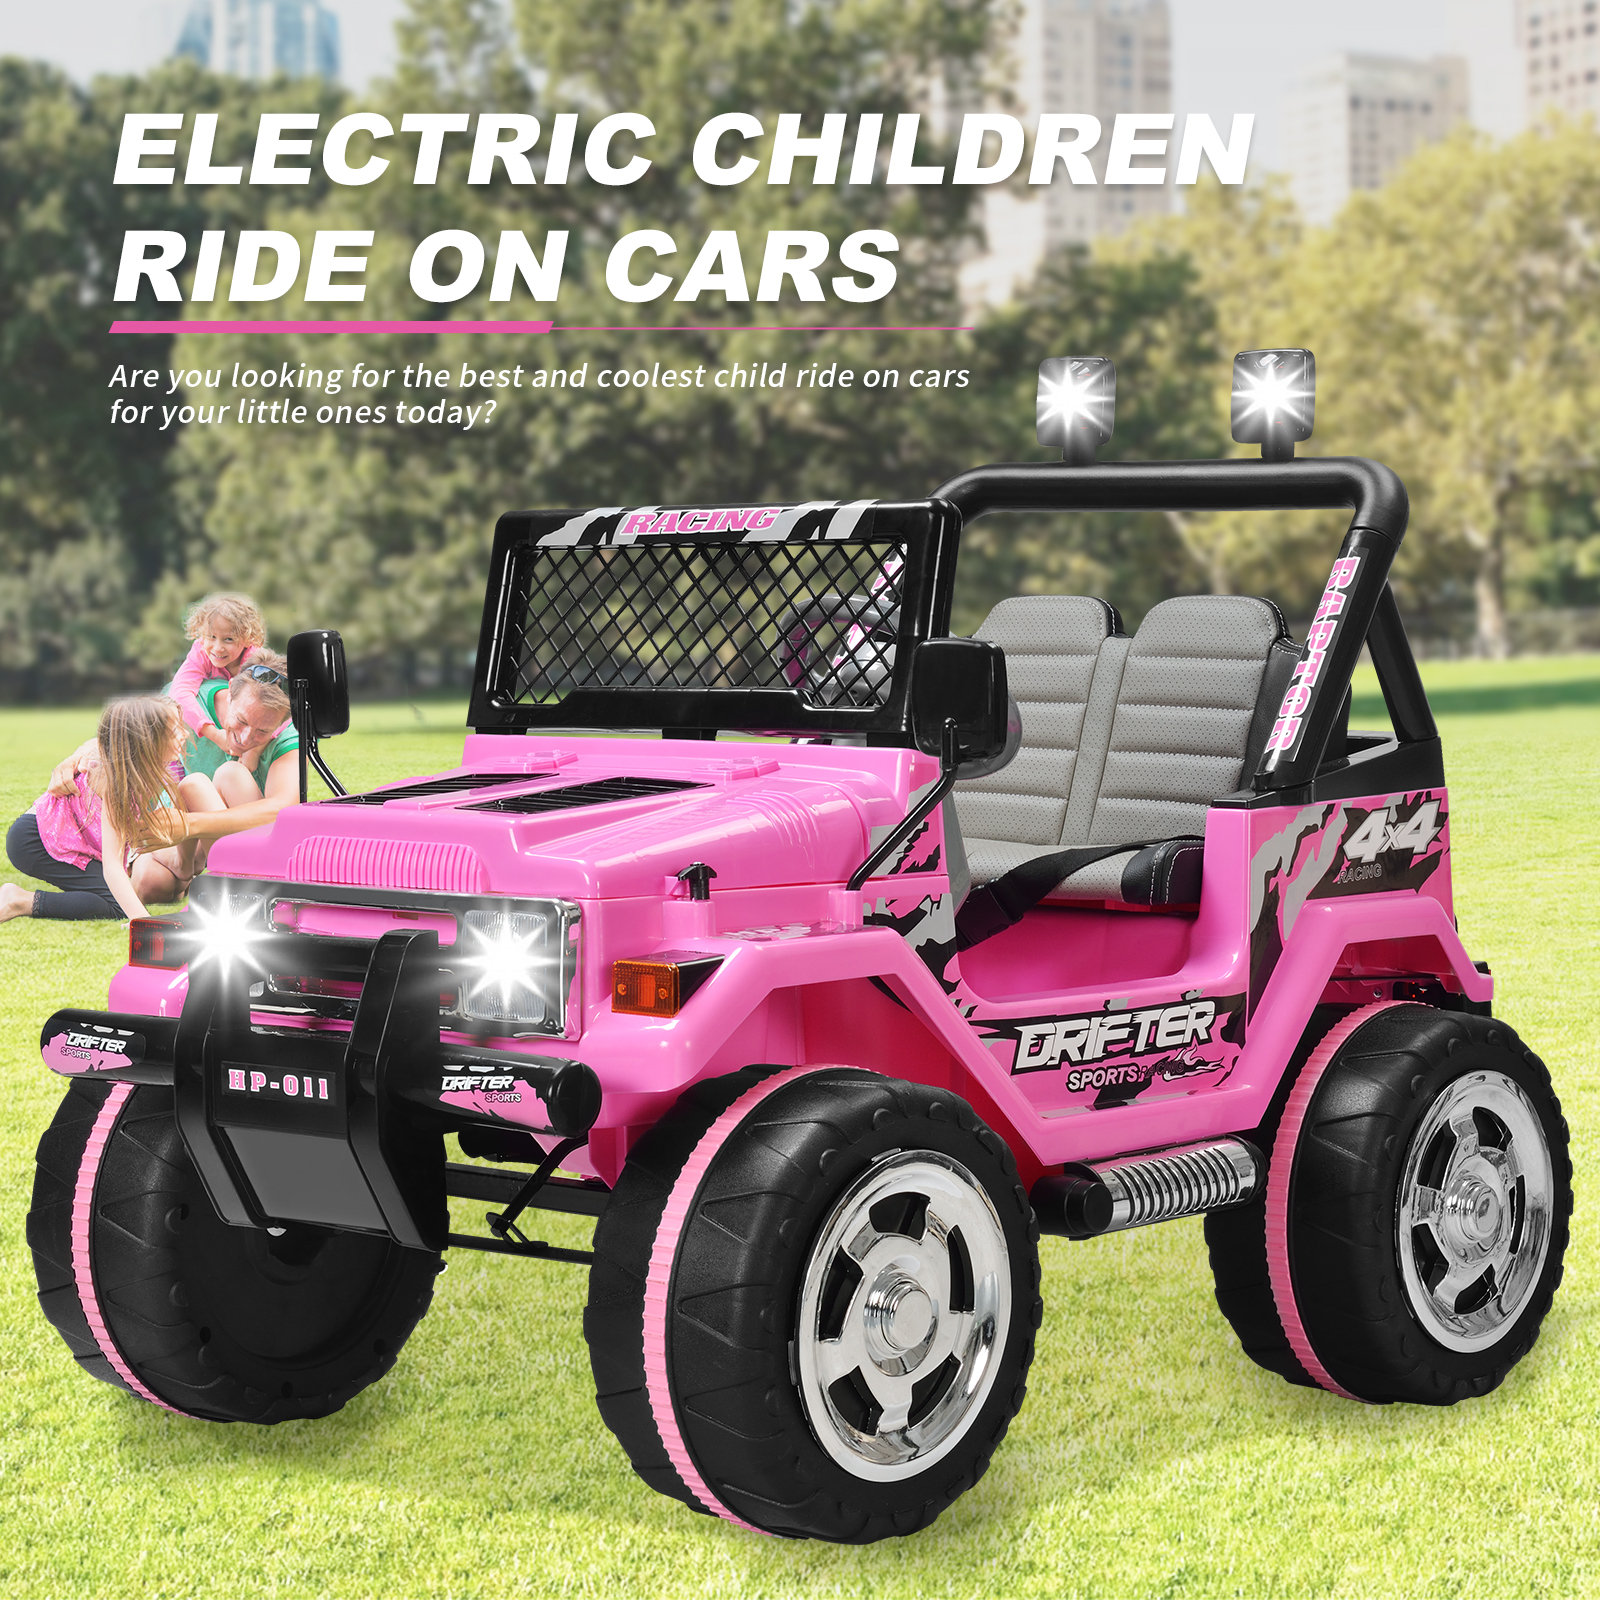 Battery Operated Vehicles for Kids Unique 12v Kids Ride On Cars Electric Battery Power Wheel Remote Control